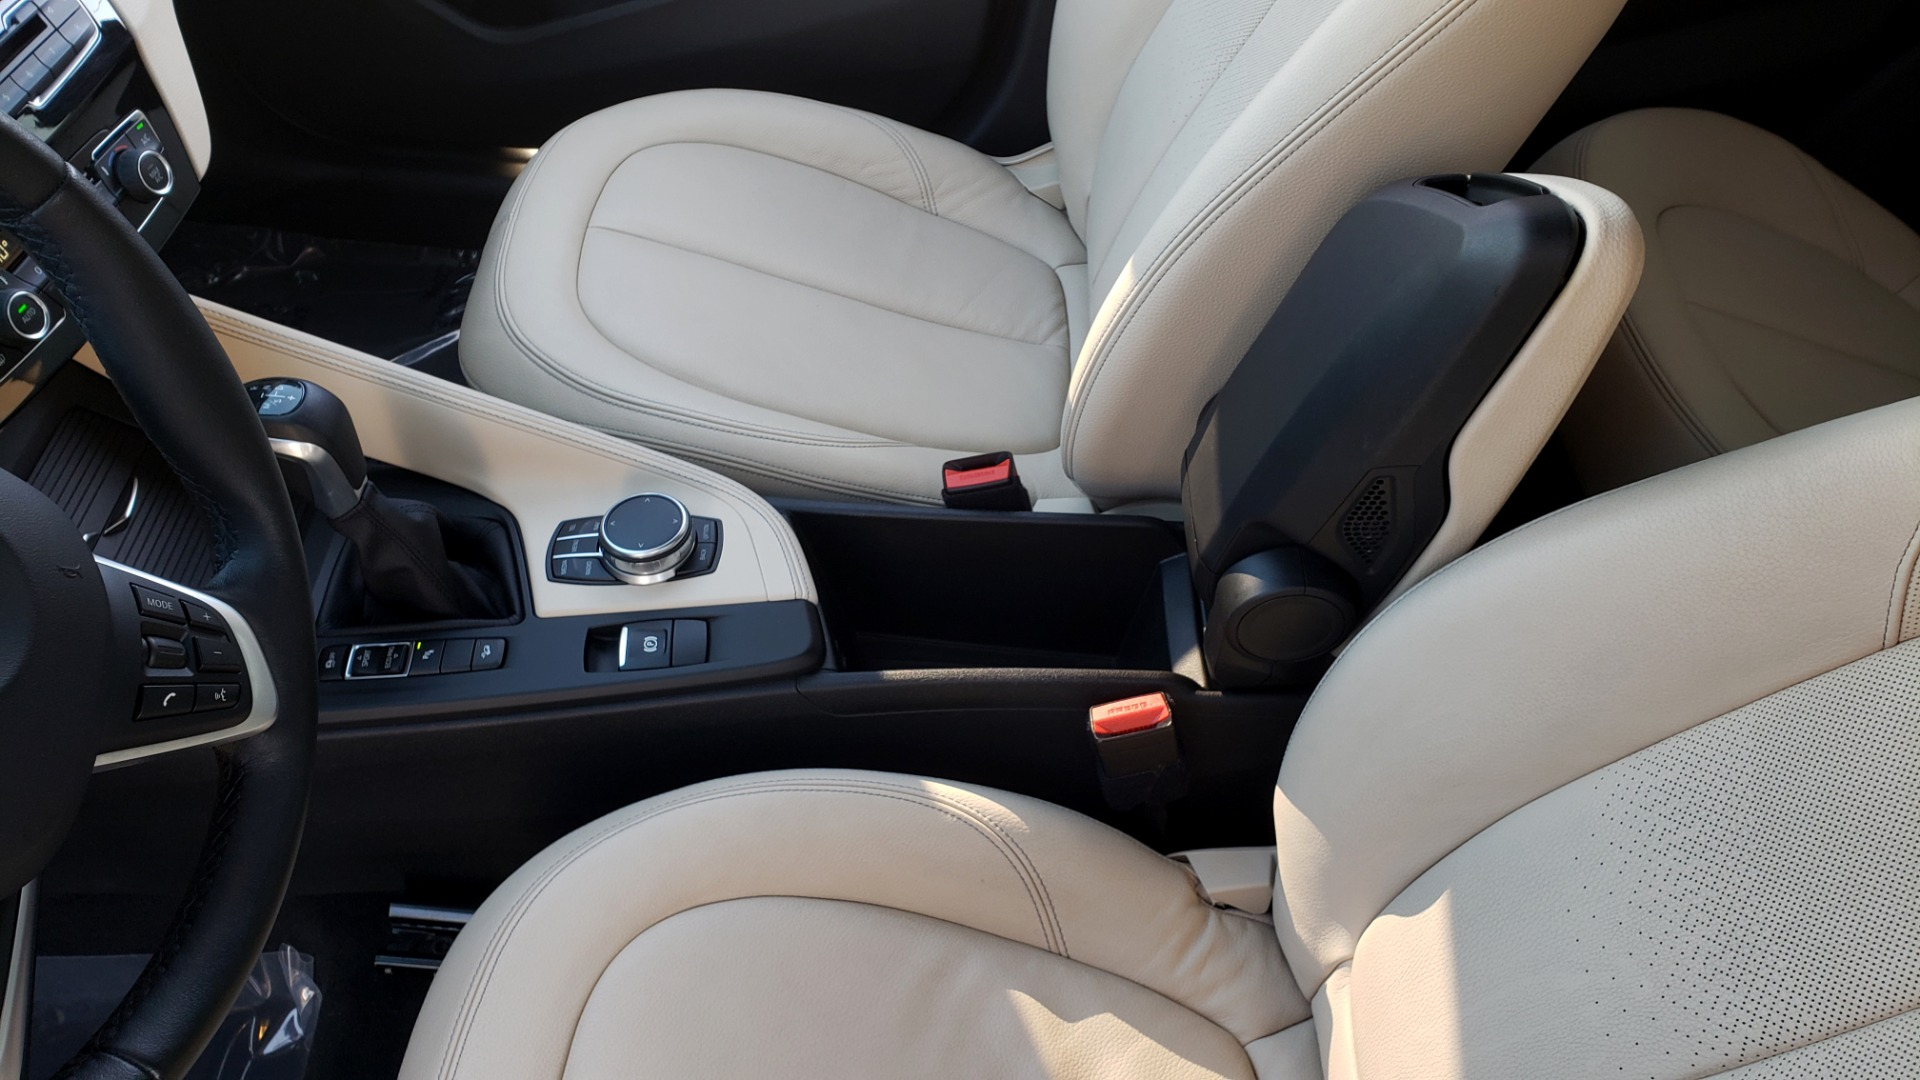 Used 2017 BMW X1 XDRIVE28I / PREM / TECH / DRVR ASST PLUS / COLD WTHR / REARVIEW for sale $26,995 at Formula Imports in Charlotte NC 28227 55